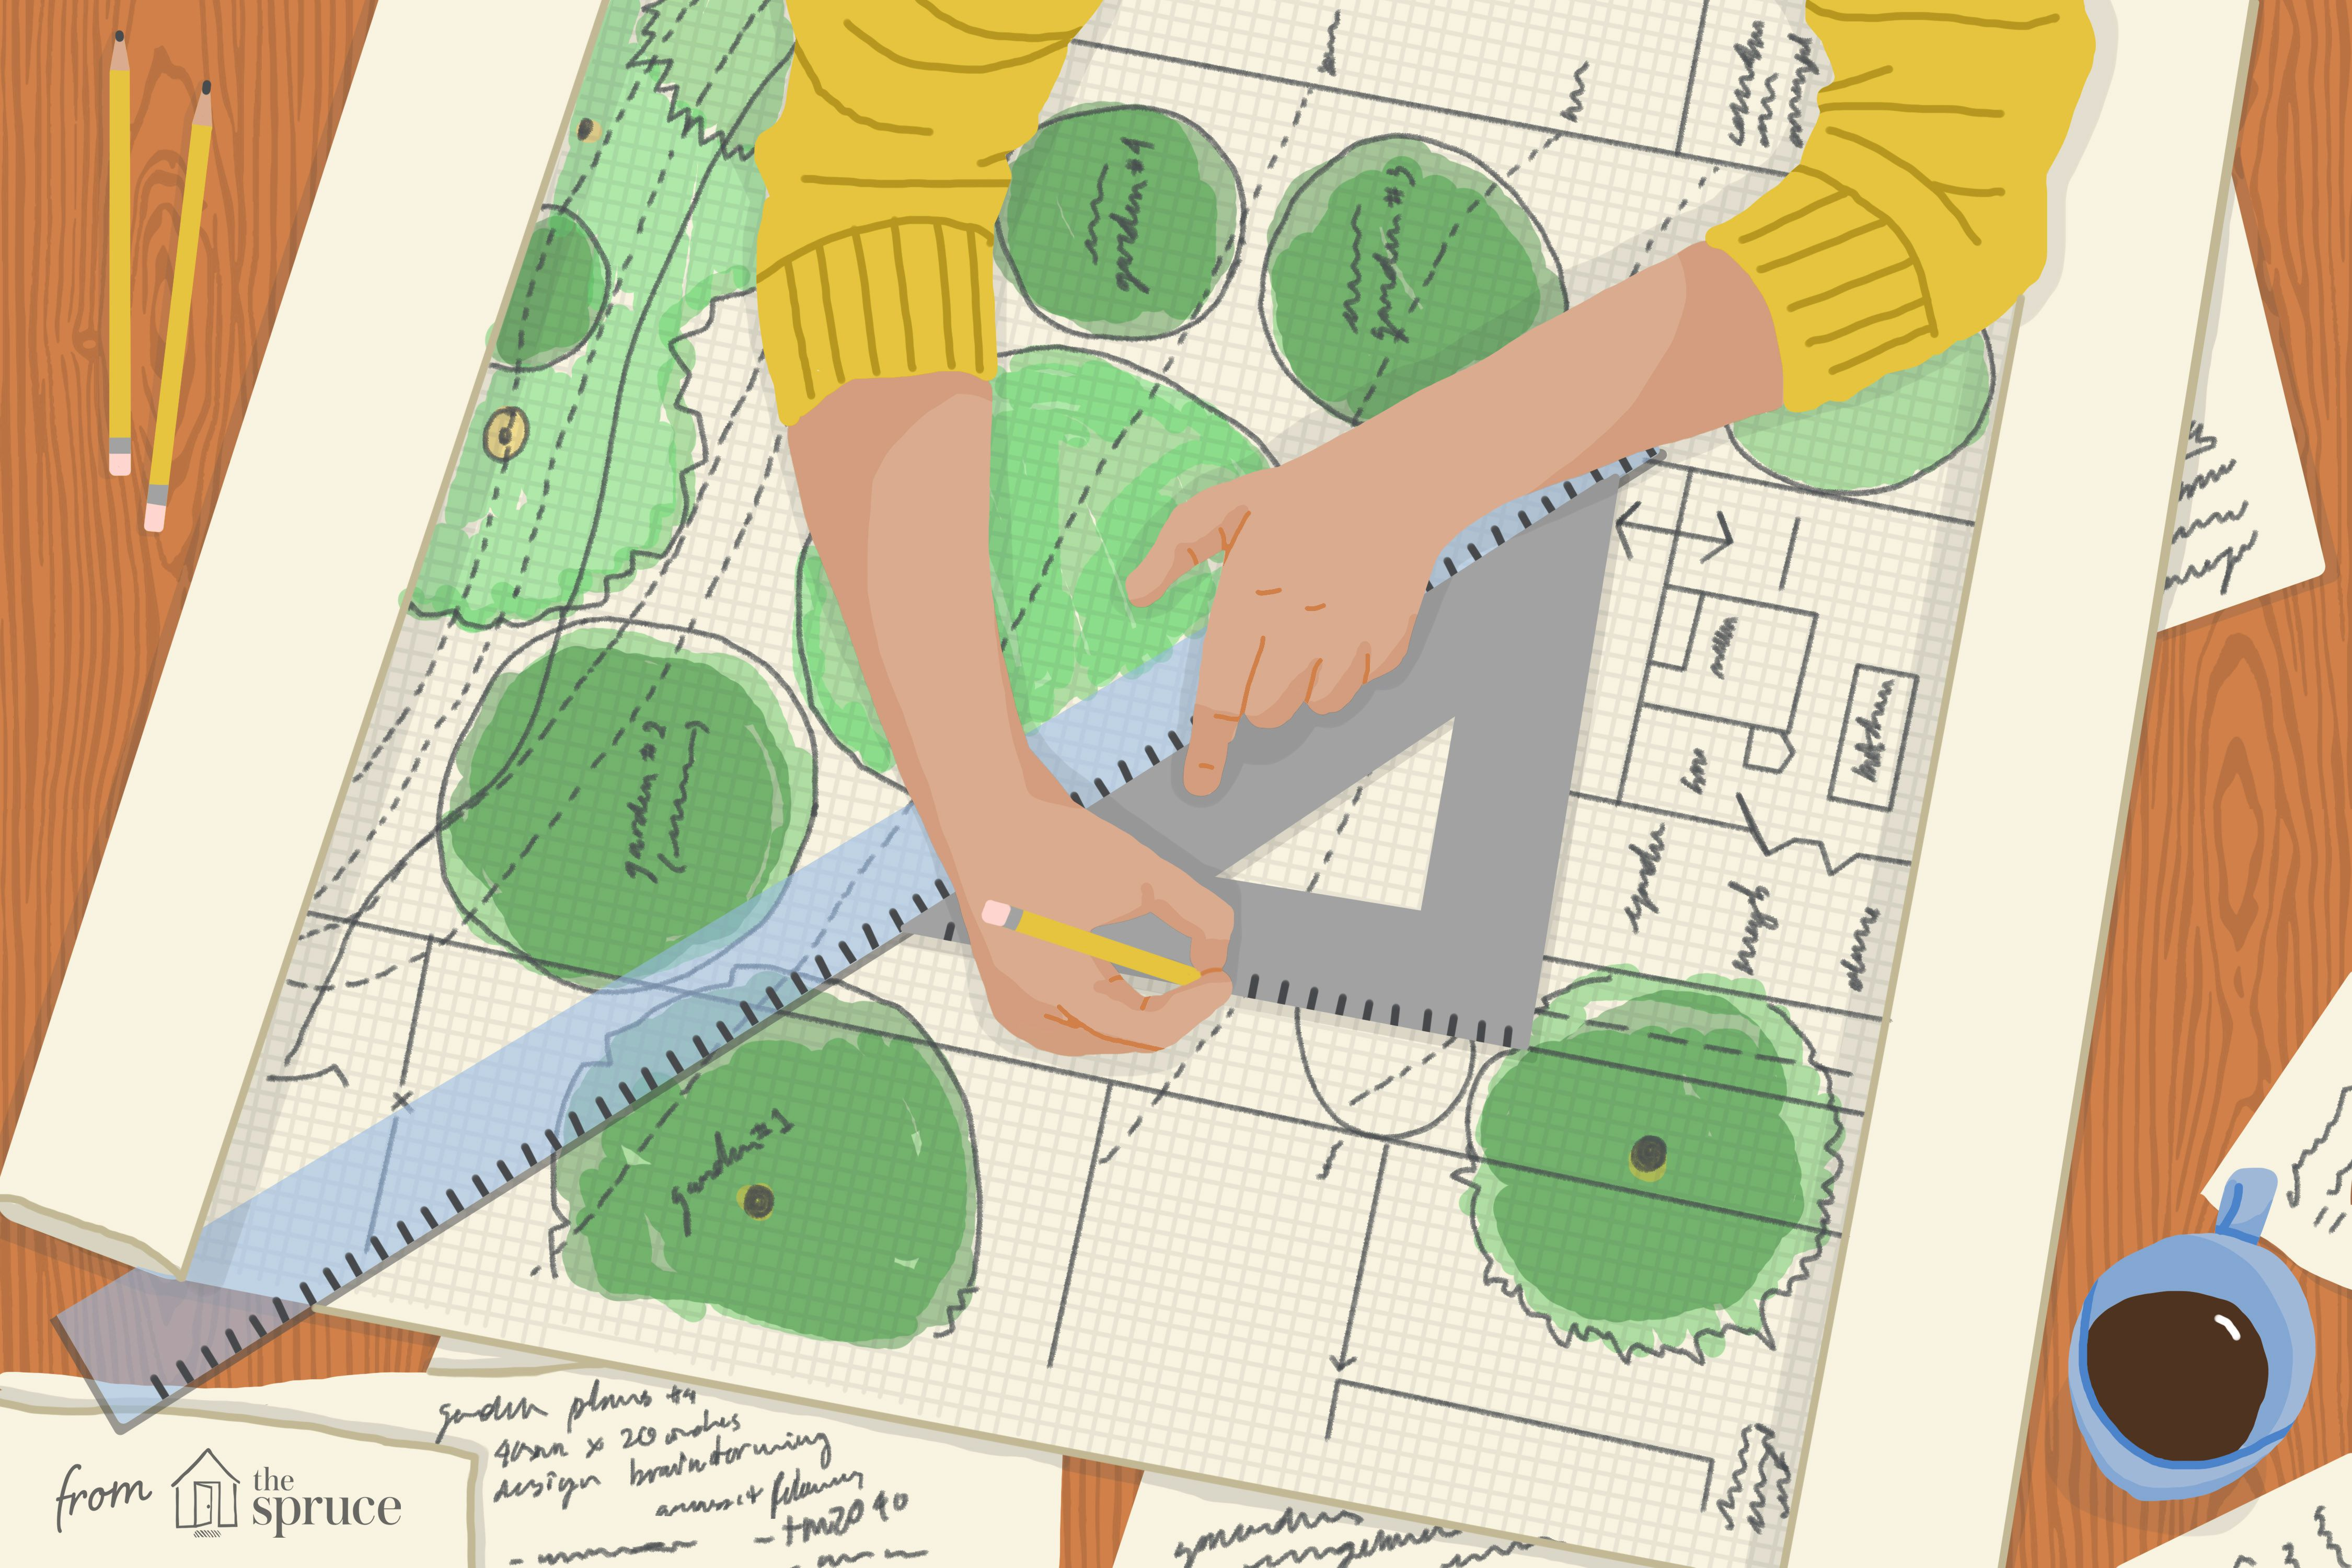 How to Draw Landscape Plans: Help for Beginning DIY'ers